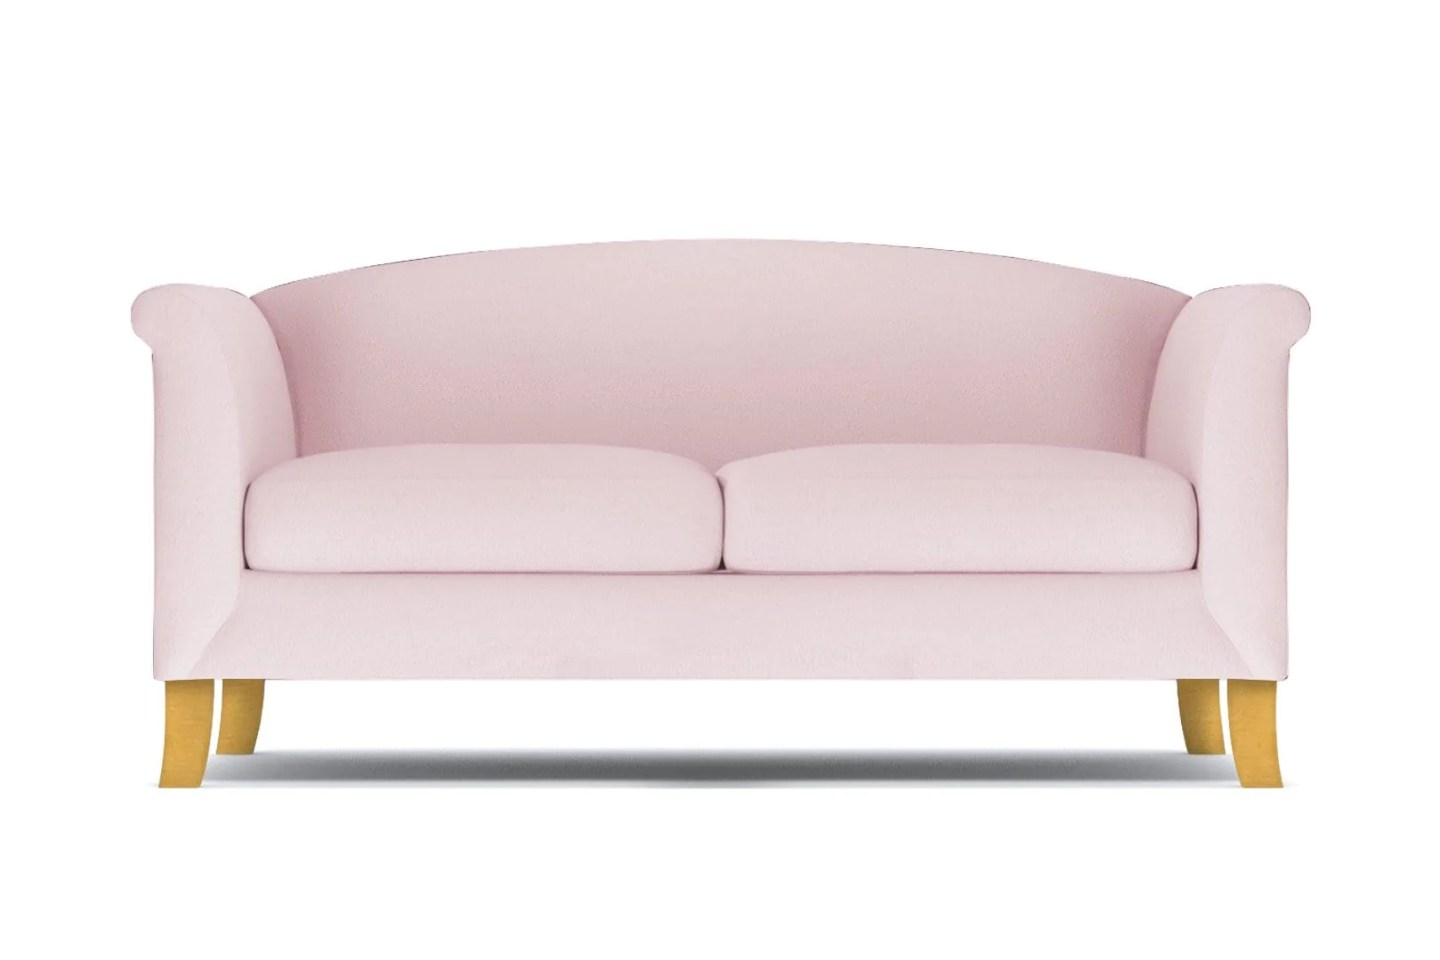 Albright Loveseat - Pink Velvet -  Small Space Modern Couch Made in the USA - Sold by Apt2B